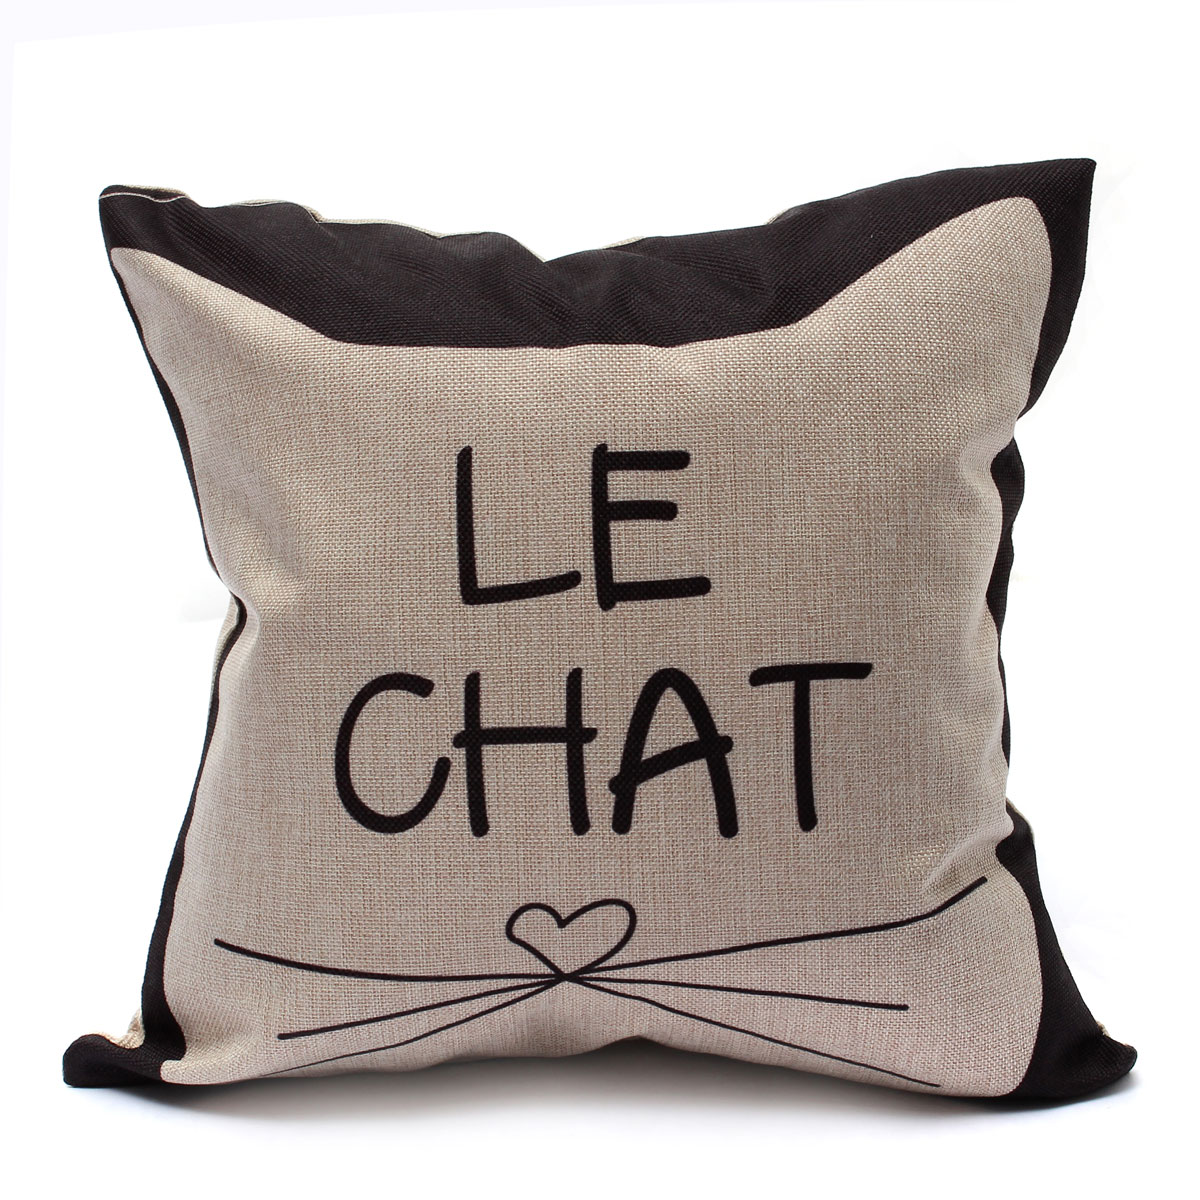 housse de coussin taie oreiller canap d co maison cushion lit mignon chat 43 43 ebay. Black Bedroom Furniture Sets. Home Design Ideas